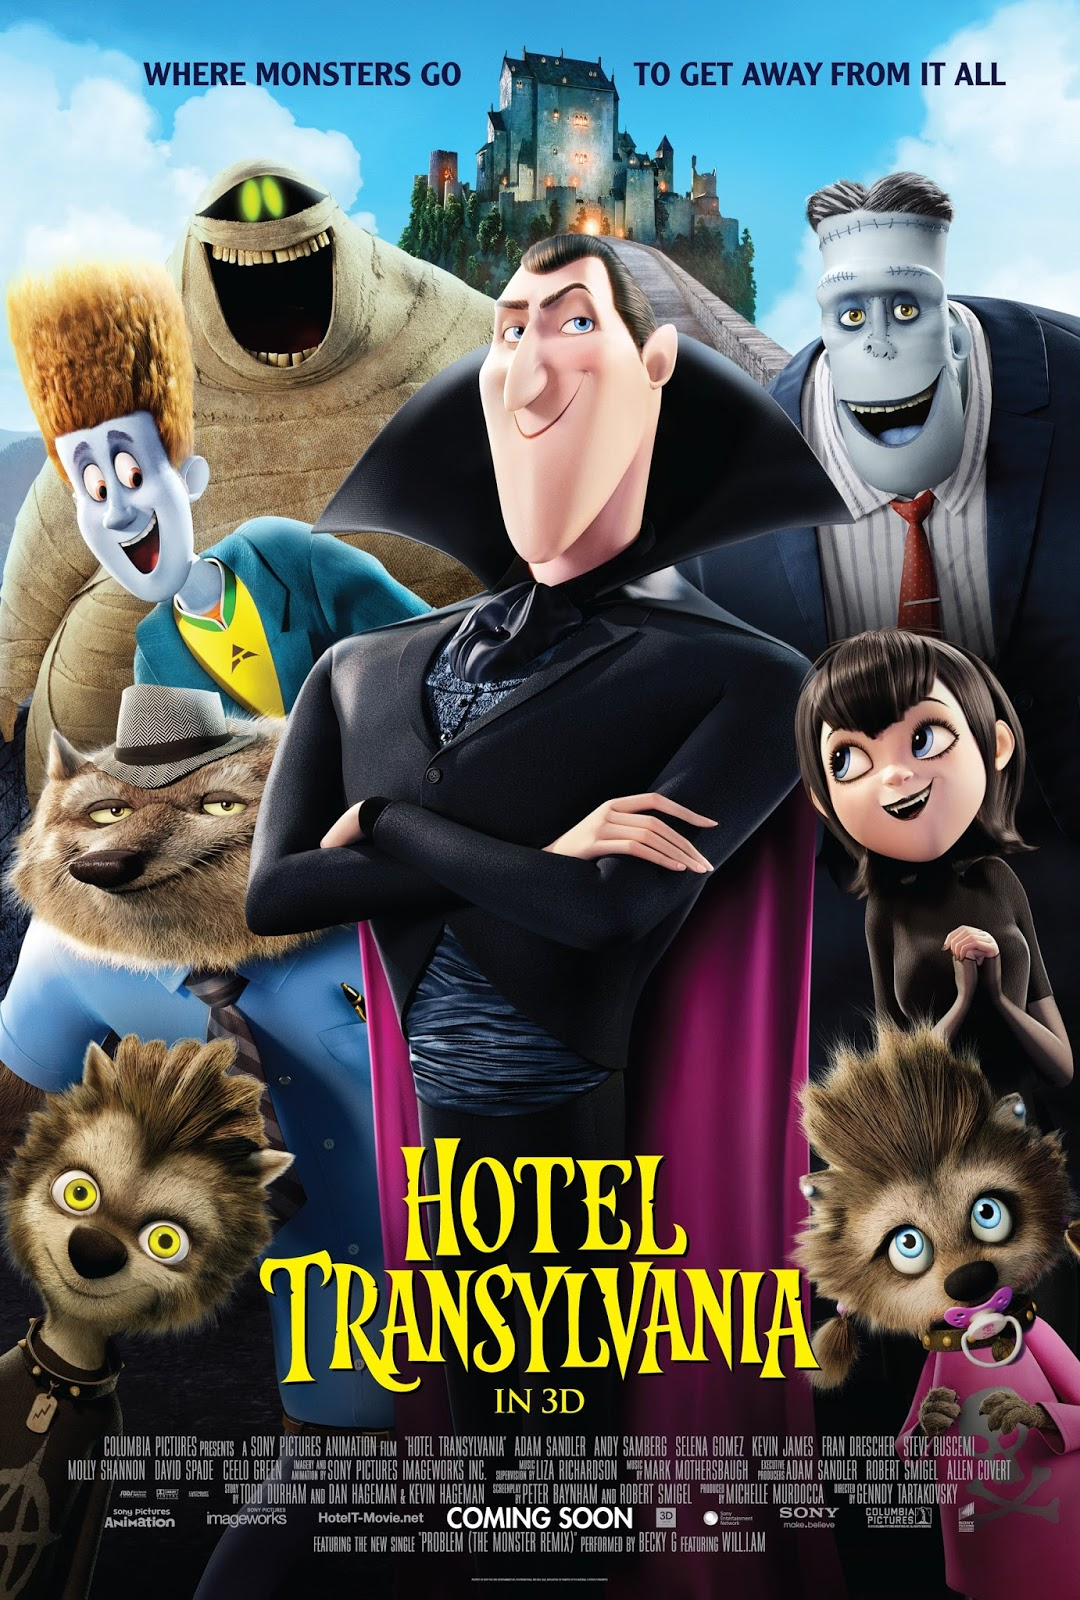 hotel transylvania monsters vacation away even need go